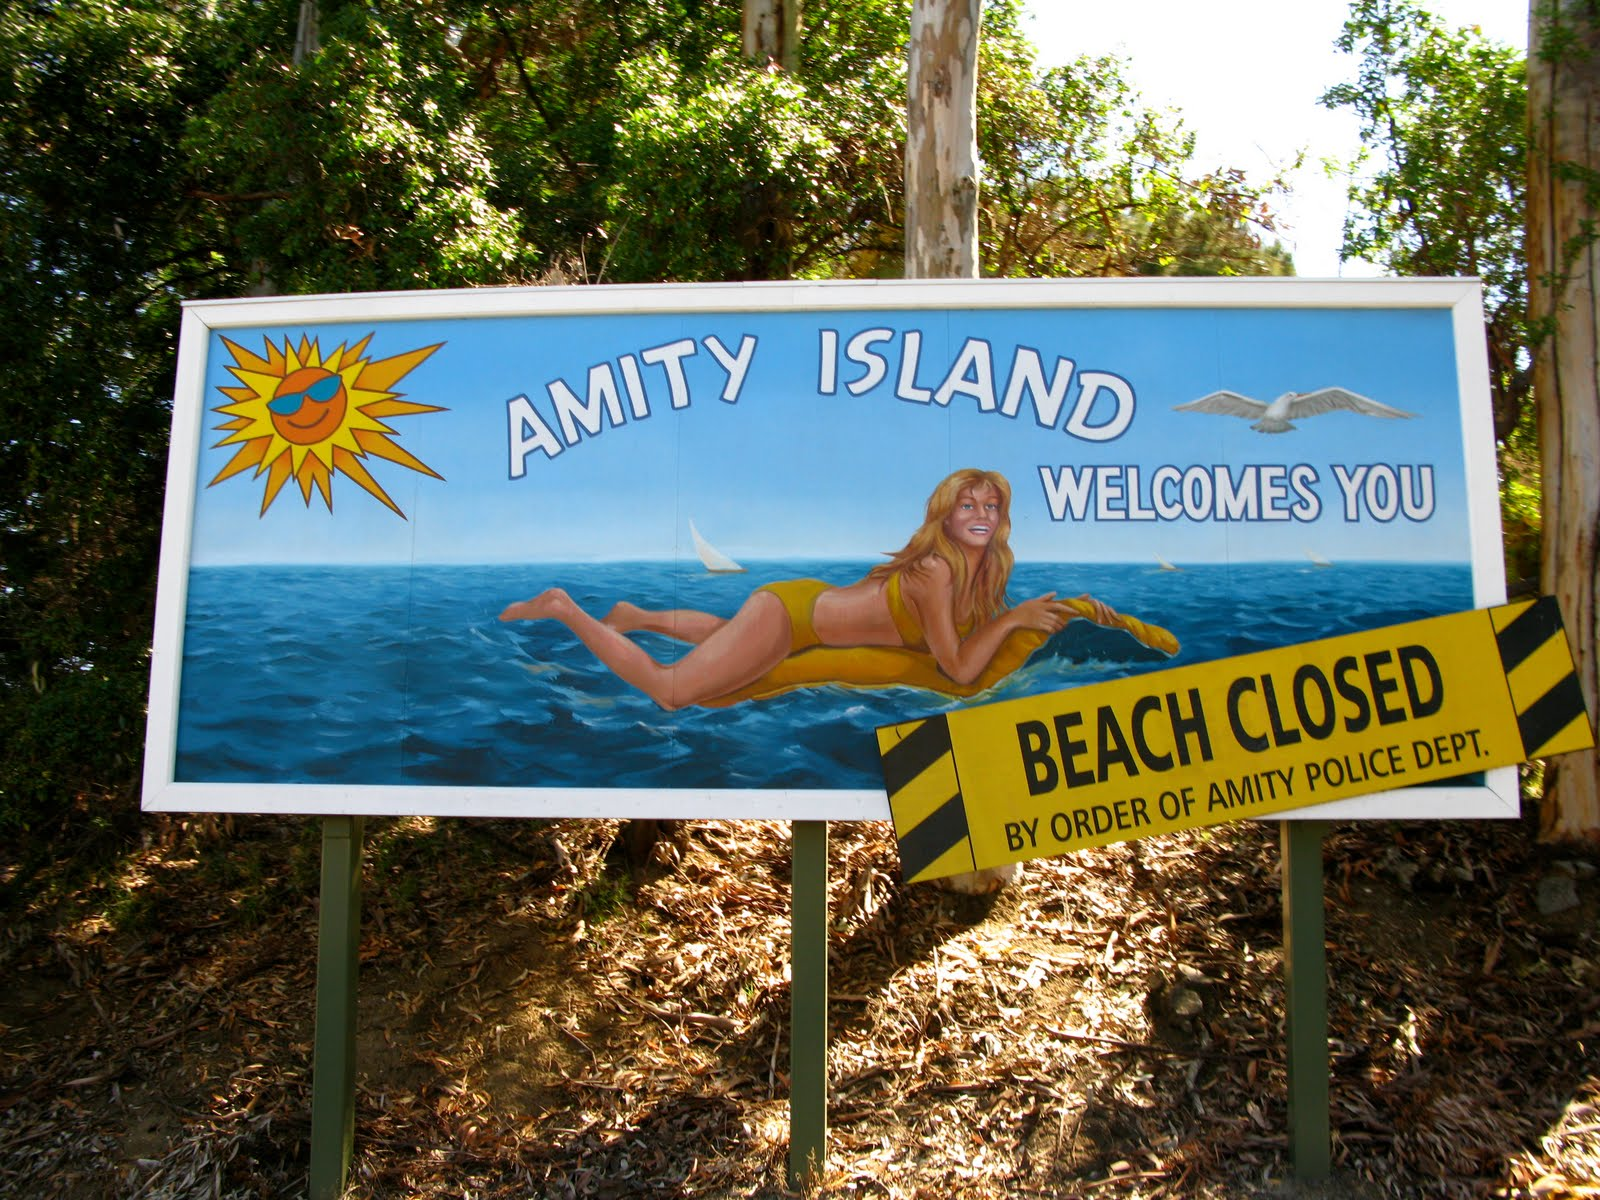 Welcome to Amity sign (no shark)